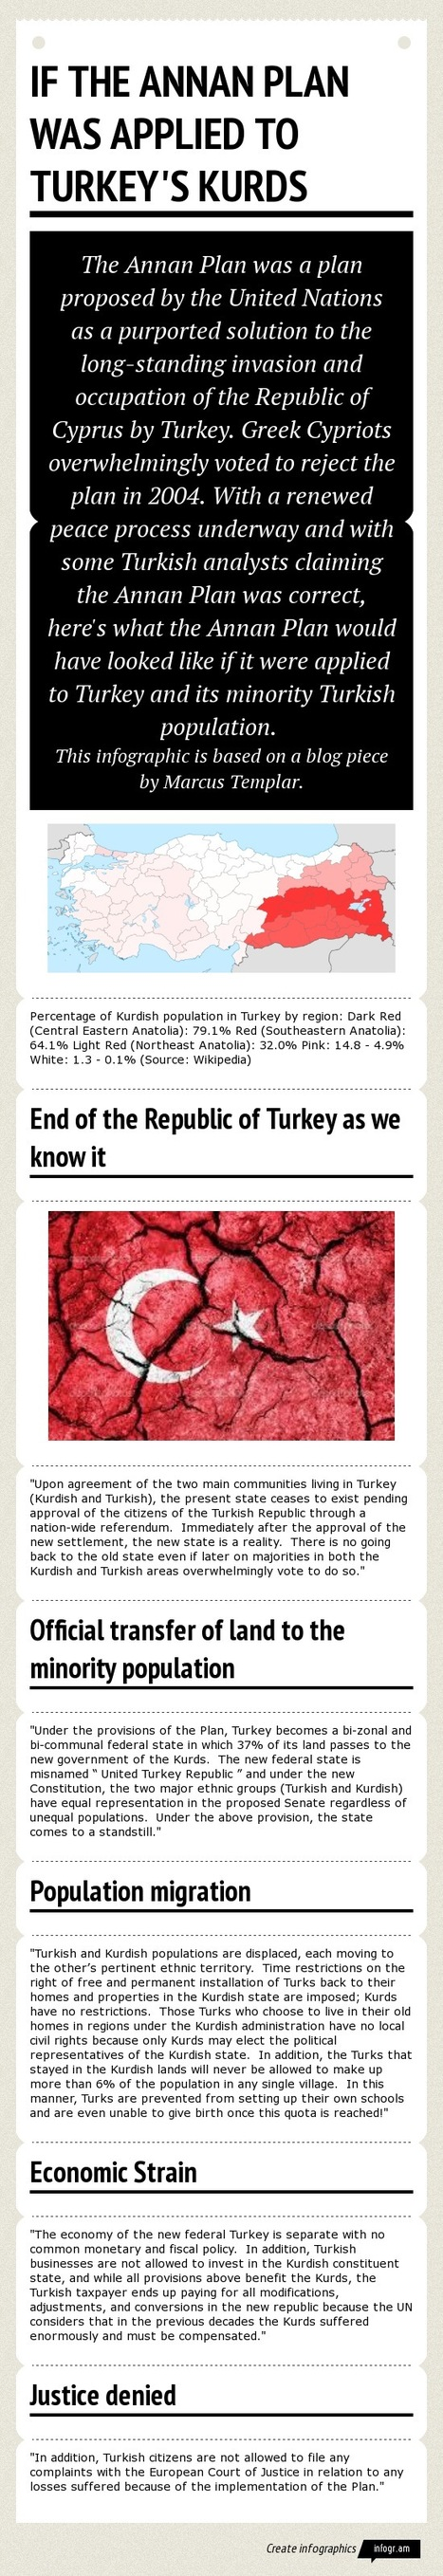 If the Annan Plan was applied to Turkey instead of Cyprus | Politically Incorrect | Scoop.it